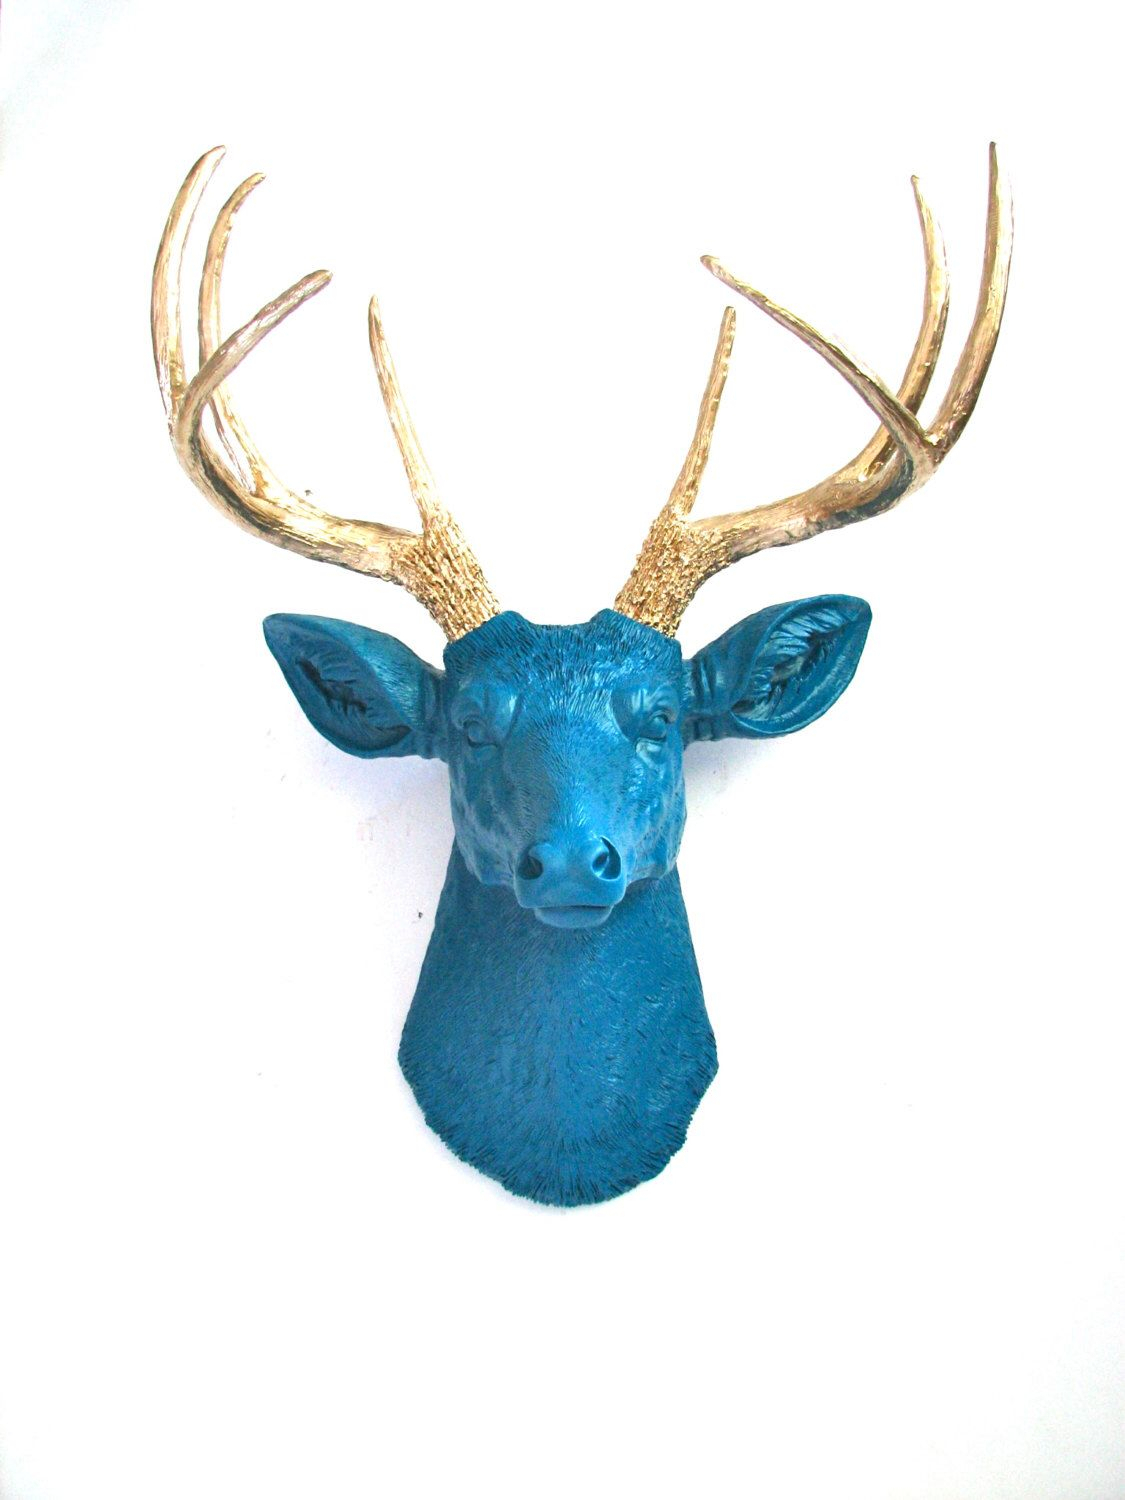 Pinjacob Porter On Blue, Gold And Black Living Room With Large Deer Head Faux Taxidermy Wall Decor (View 14 of 30)